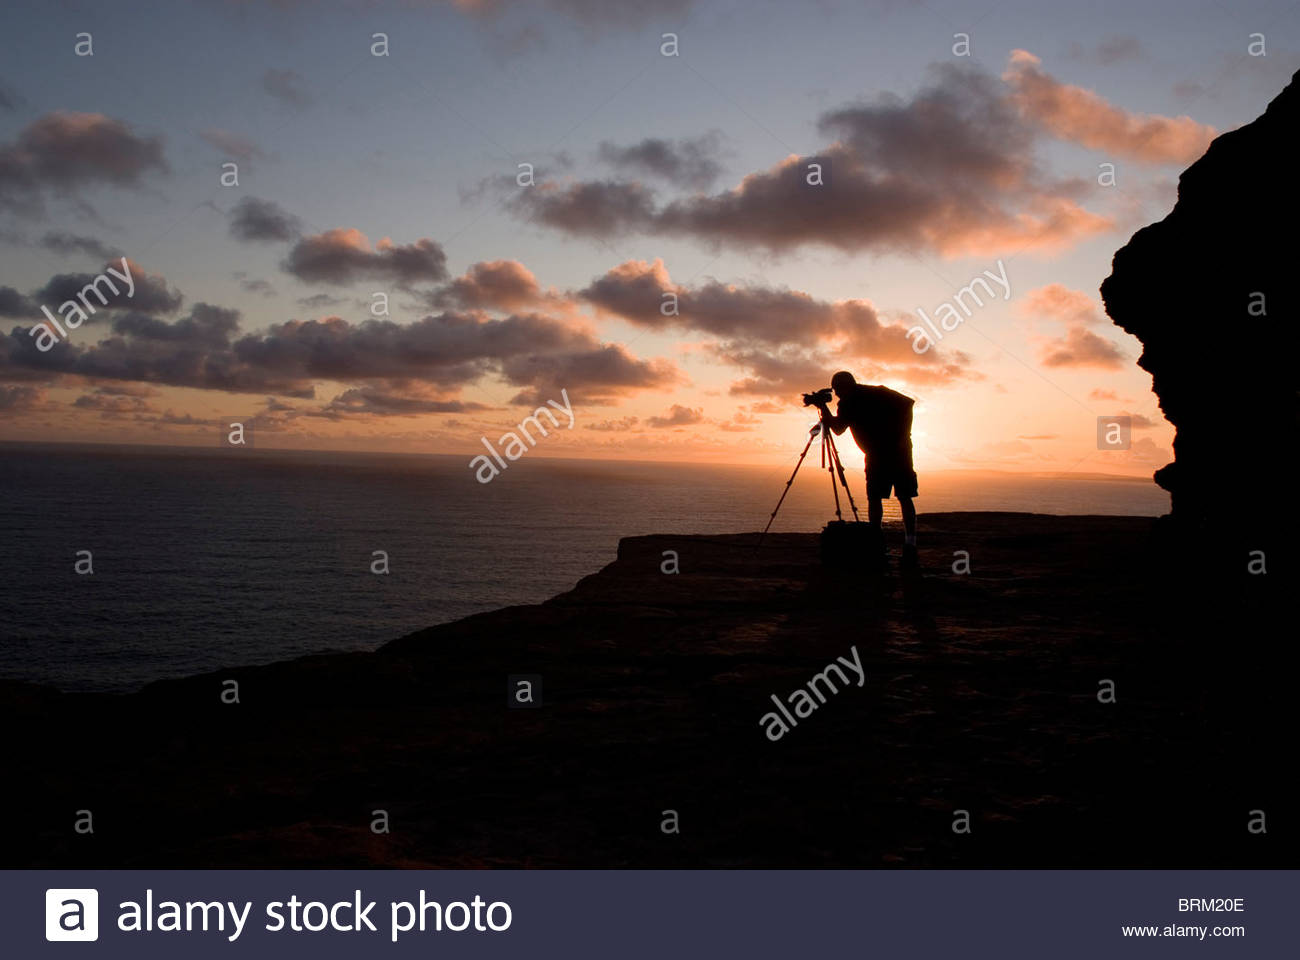 Photographer at the Cliffs of Moher in Ireland - Stock Image